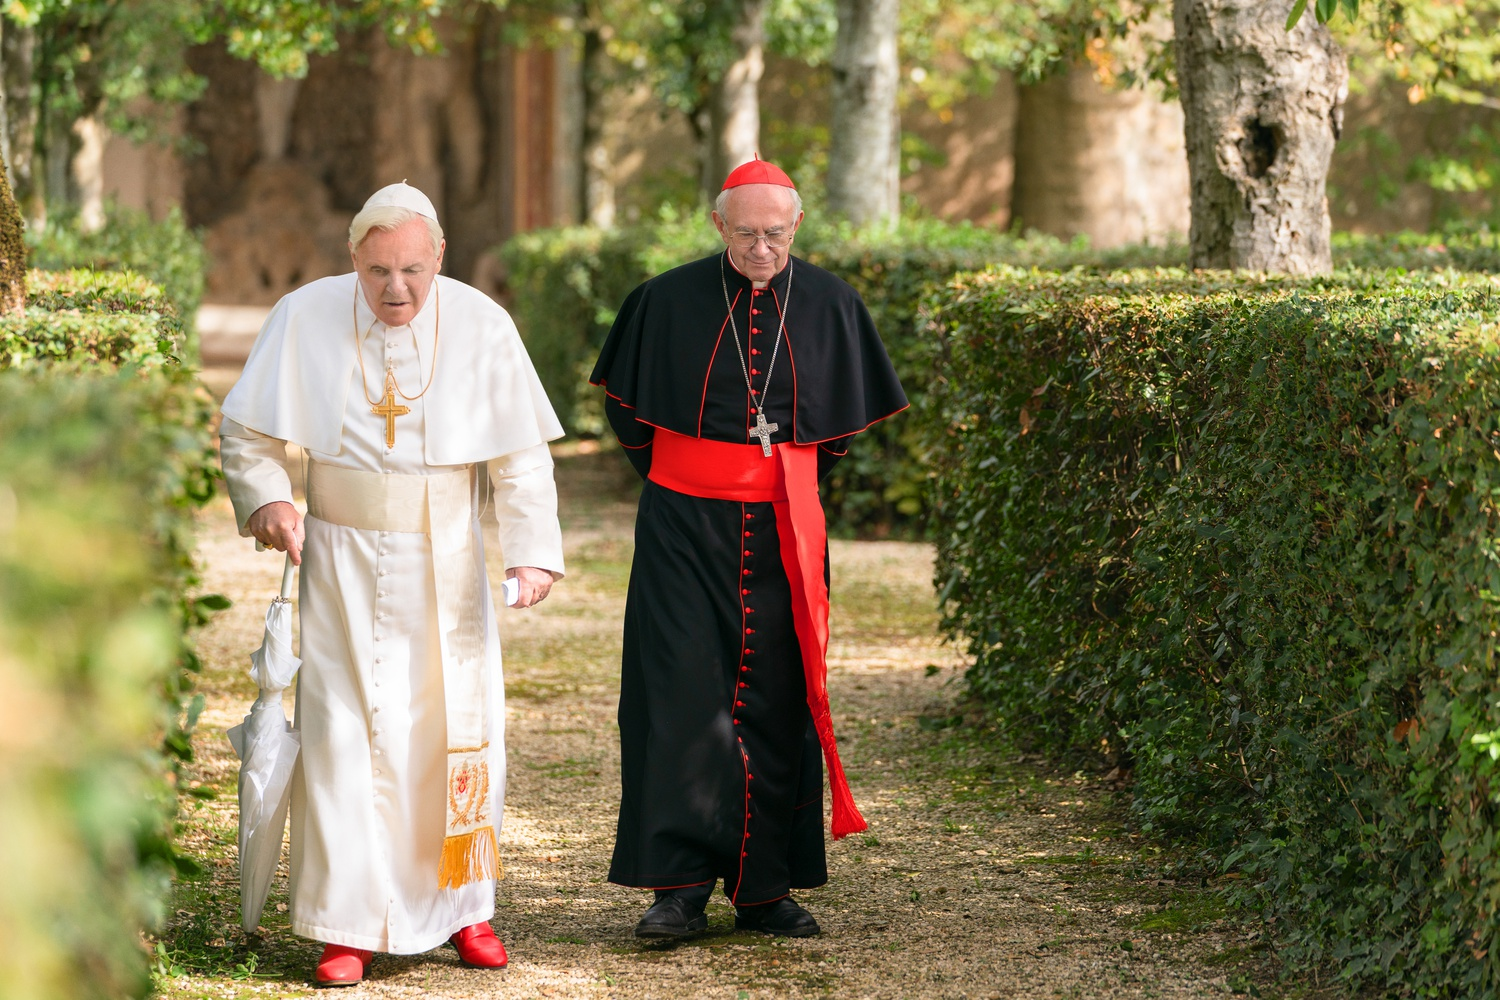 """Anthony Hopkins (left) plays Pope Benedict and Jonathan Pryce (right) plays Pope Francis in """"The Two Popes"""" (2019), directed by Fernando Meirelles."""